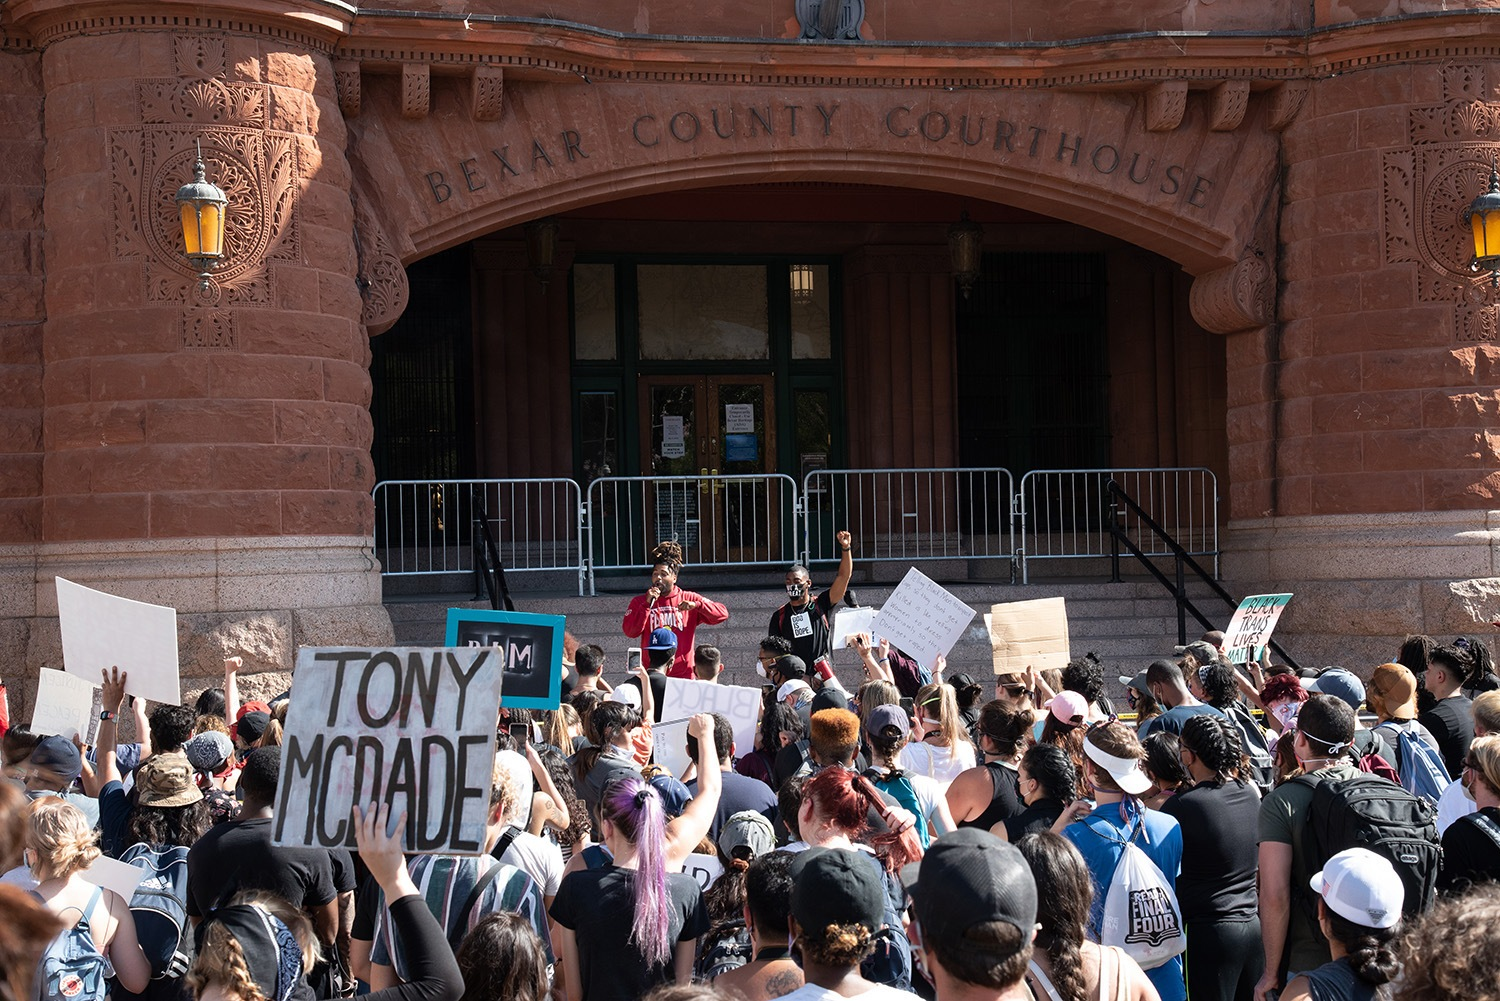 Protestors gather at the Bexar County Courthouse, Thursday, June 4.Photo by V. Finster | Heron Contributor